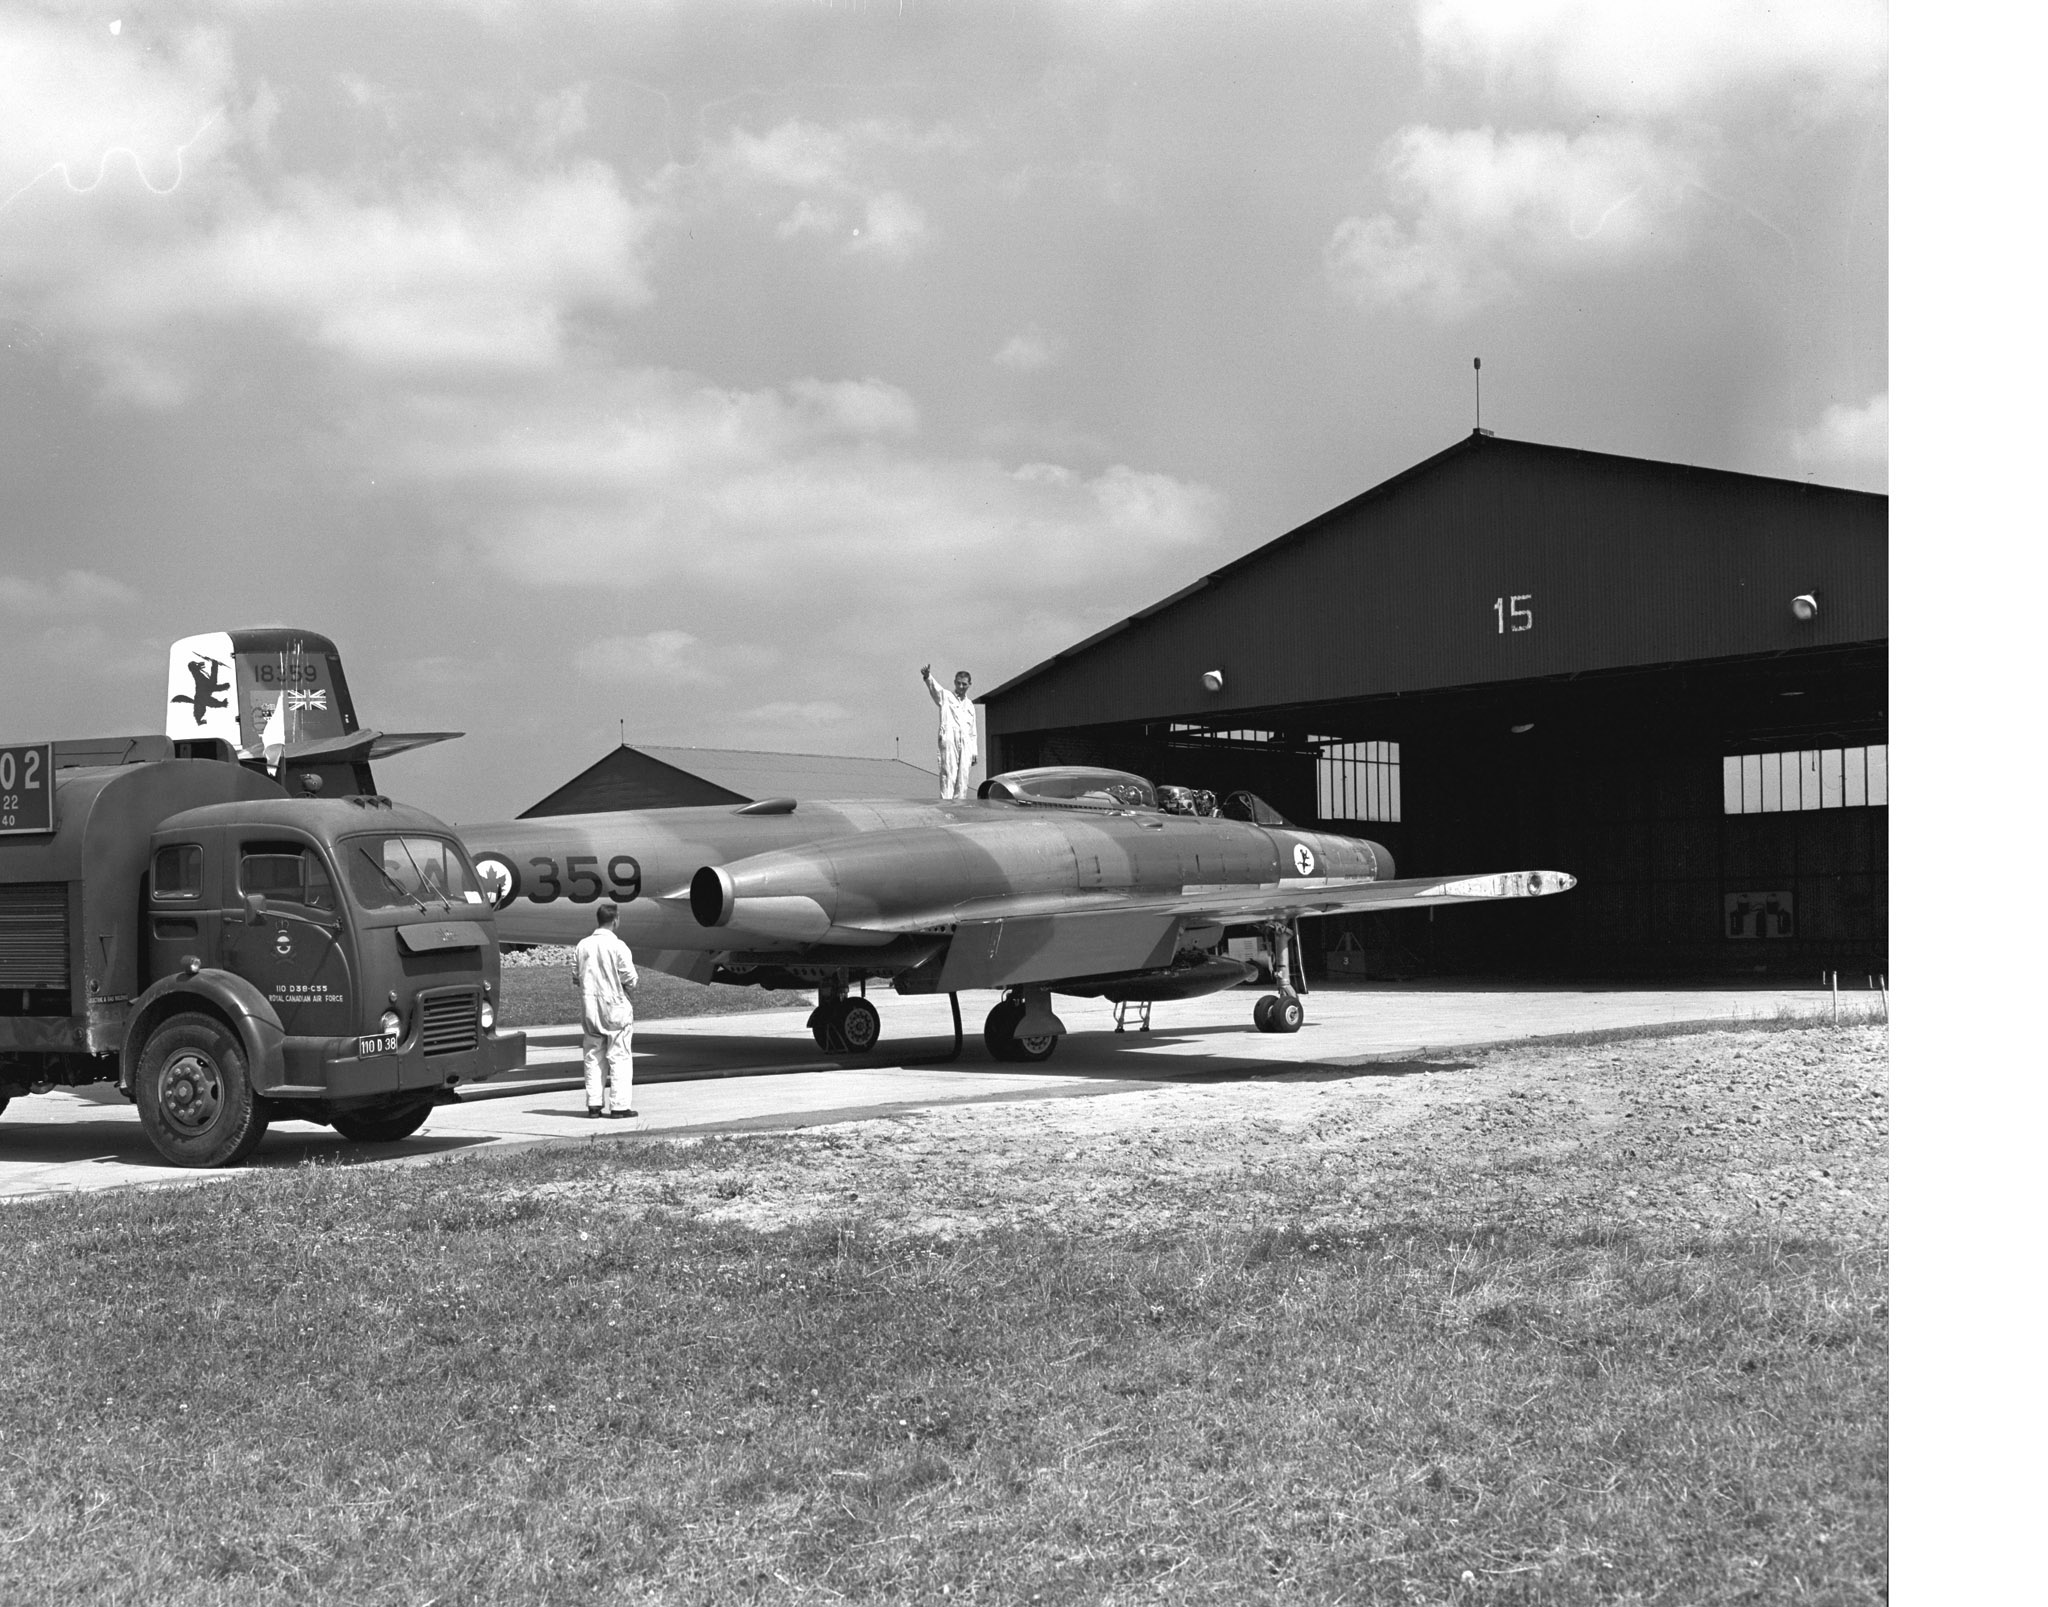 An Avro Canada CF-100 Canuck all-weather jet interceptor is refuelled ...